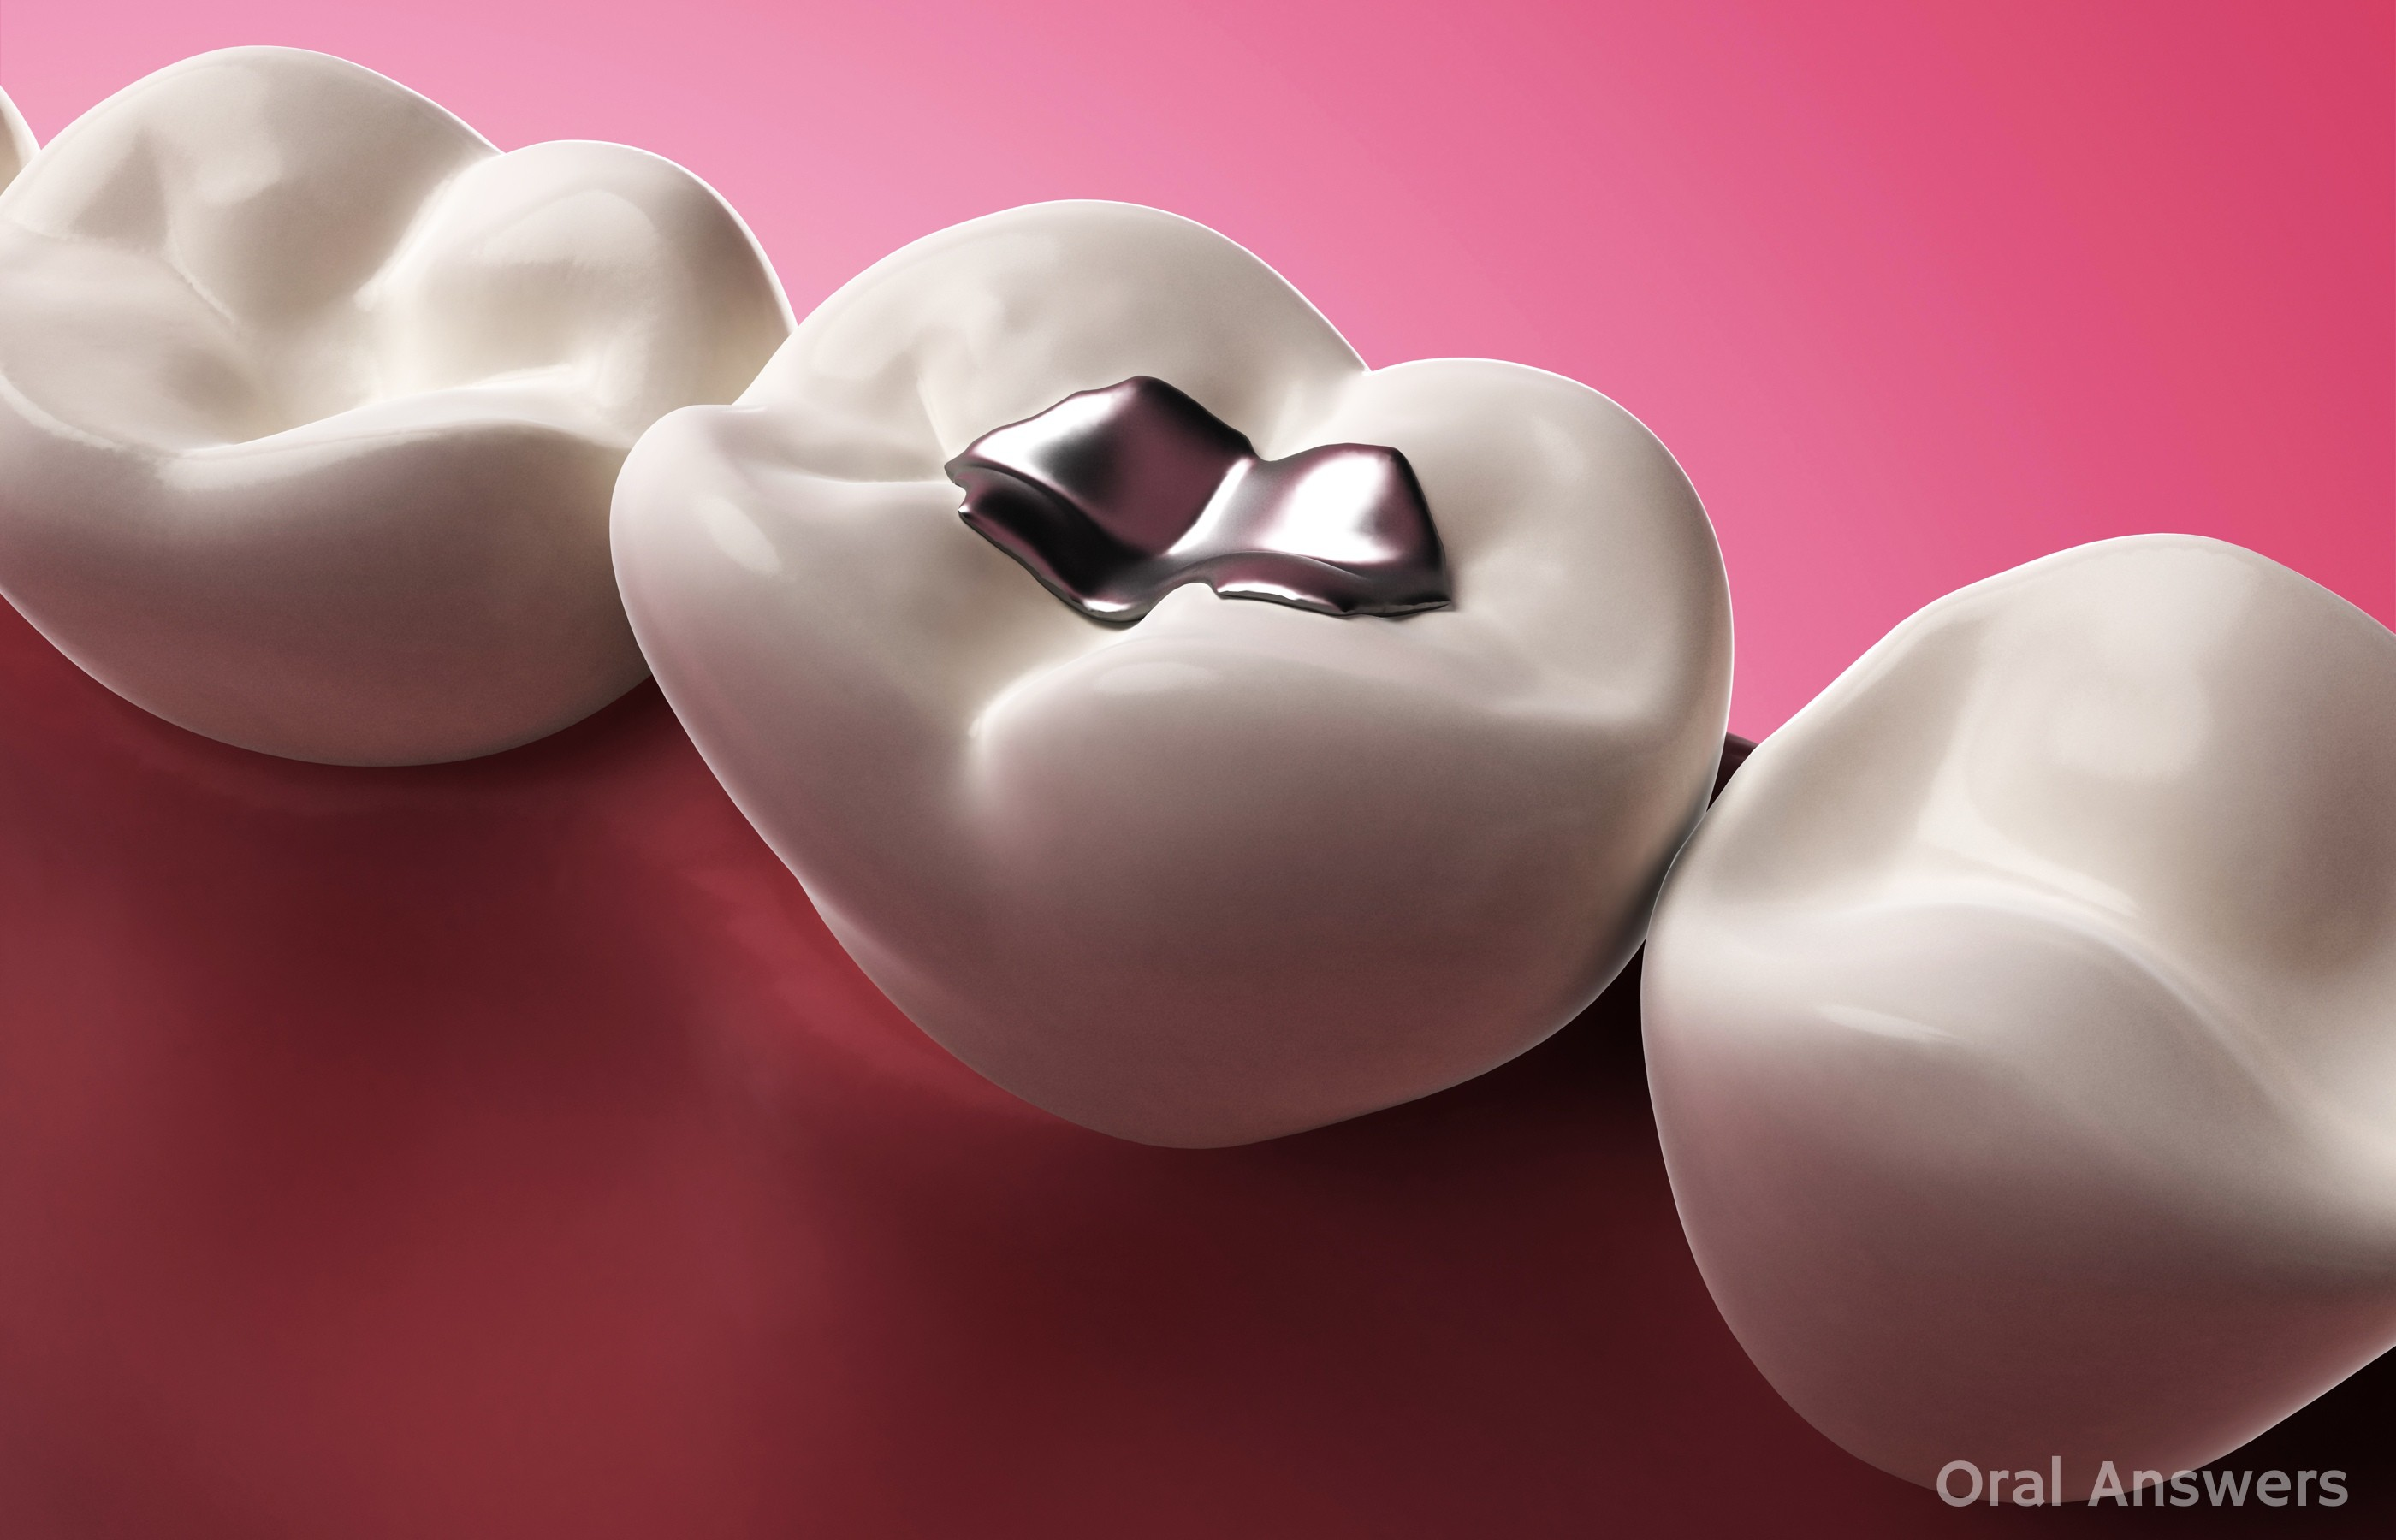 graphic rendering of a row of teeth; one has a dental amalgam filling